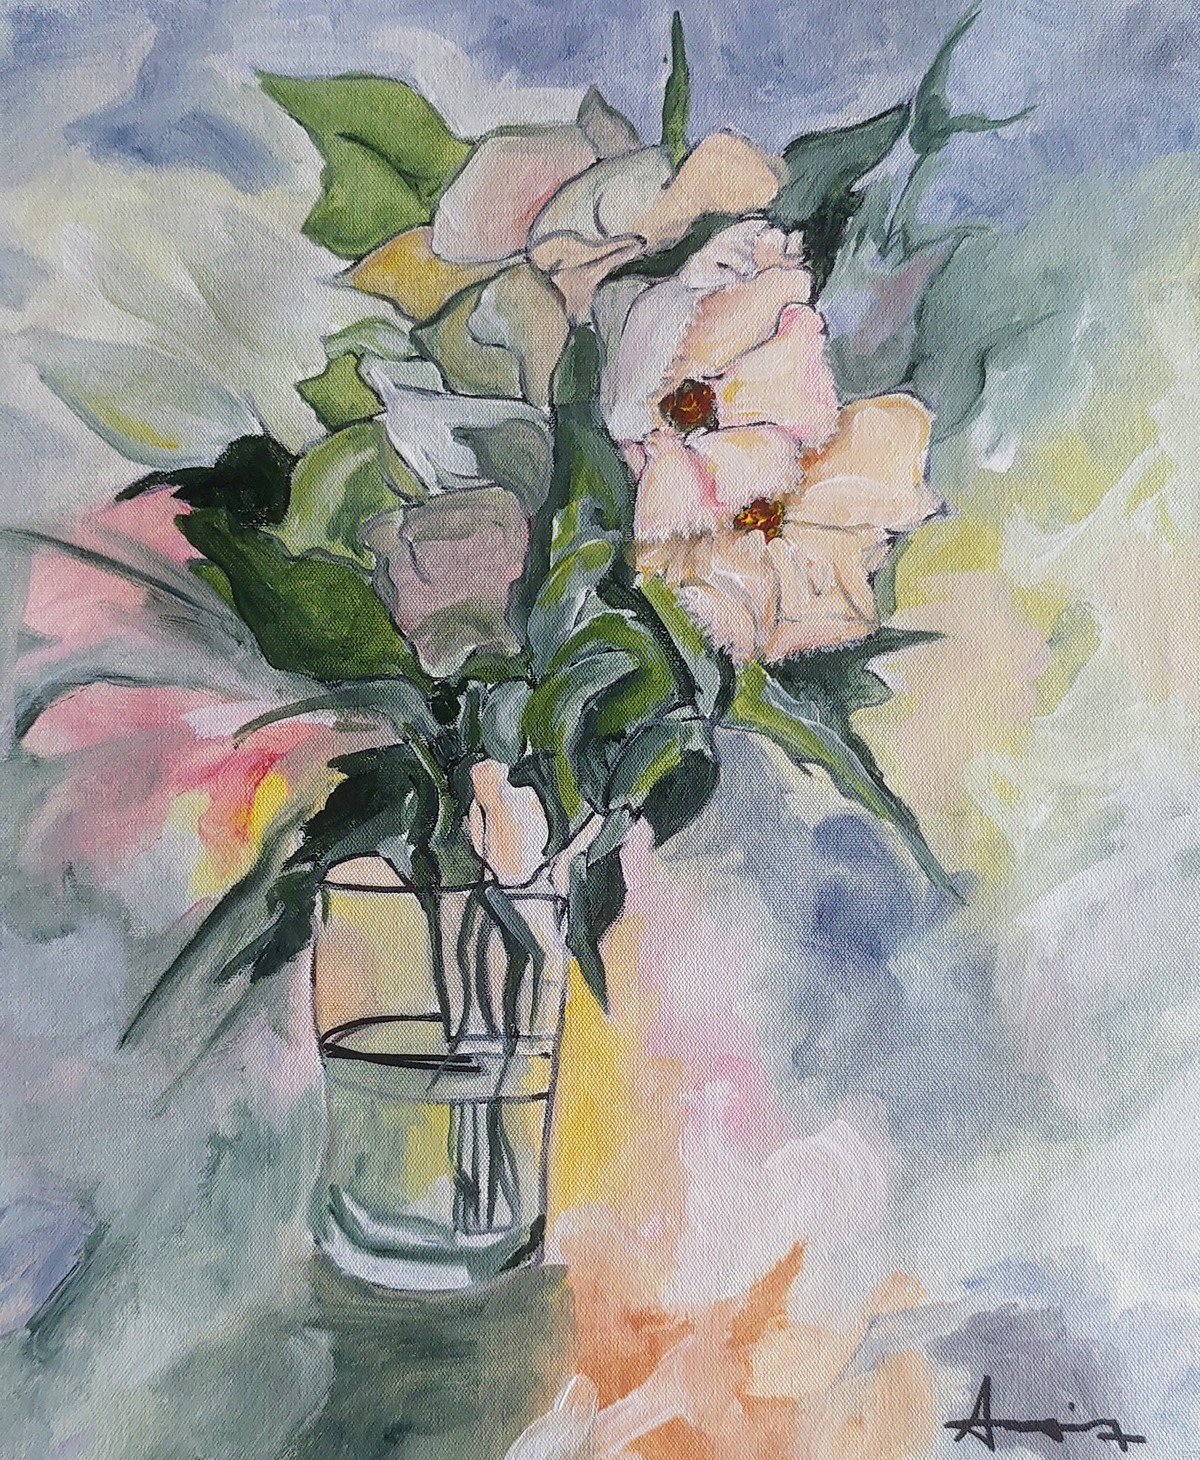 Flowers 1 by DEB SANJOY DUTTA, Impressionism Painting, Acrylic on Canvas, Cloudy color